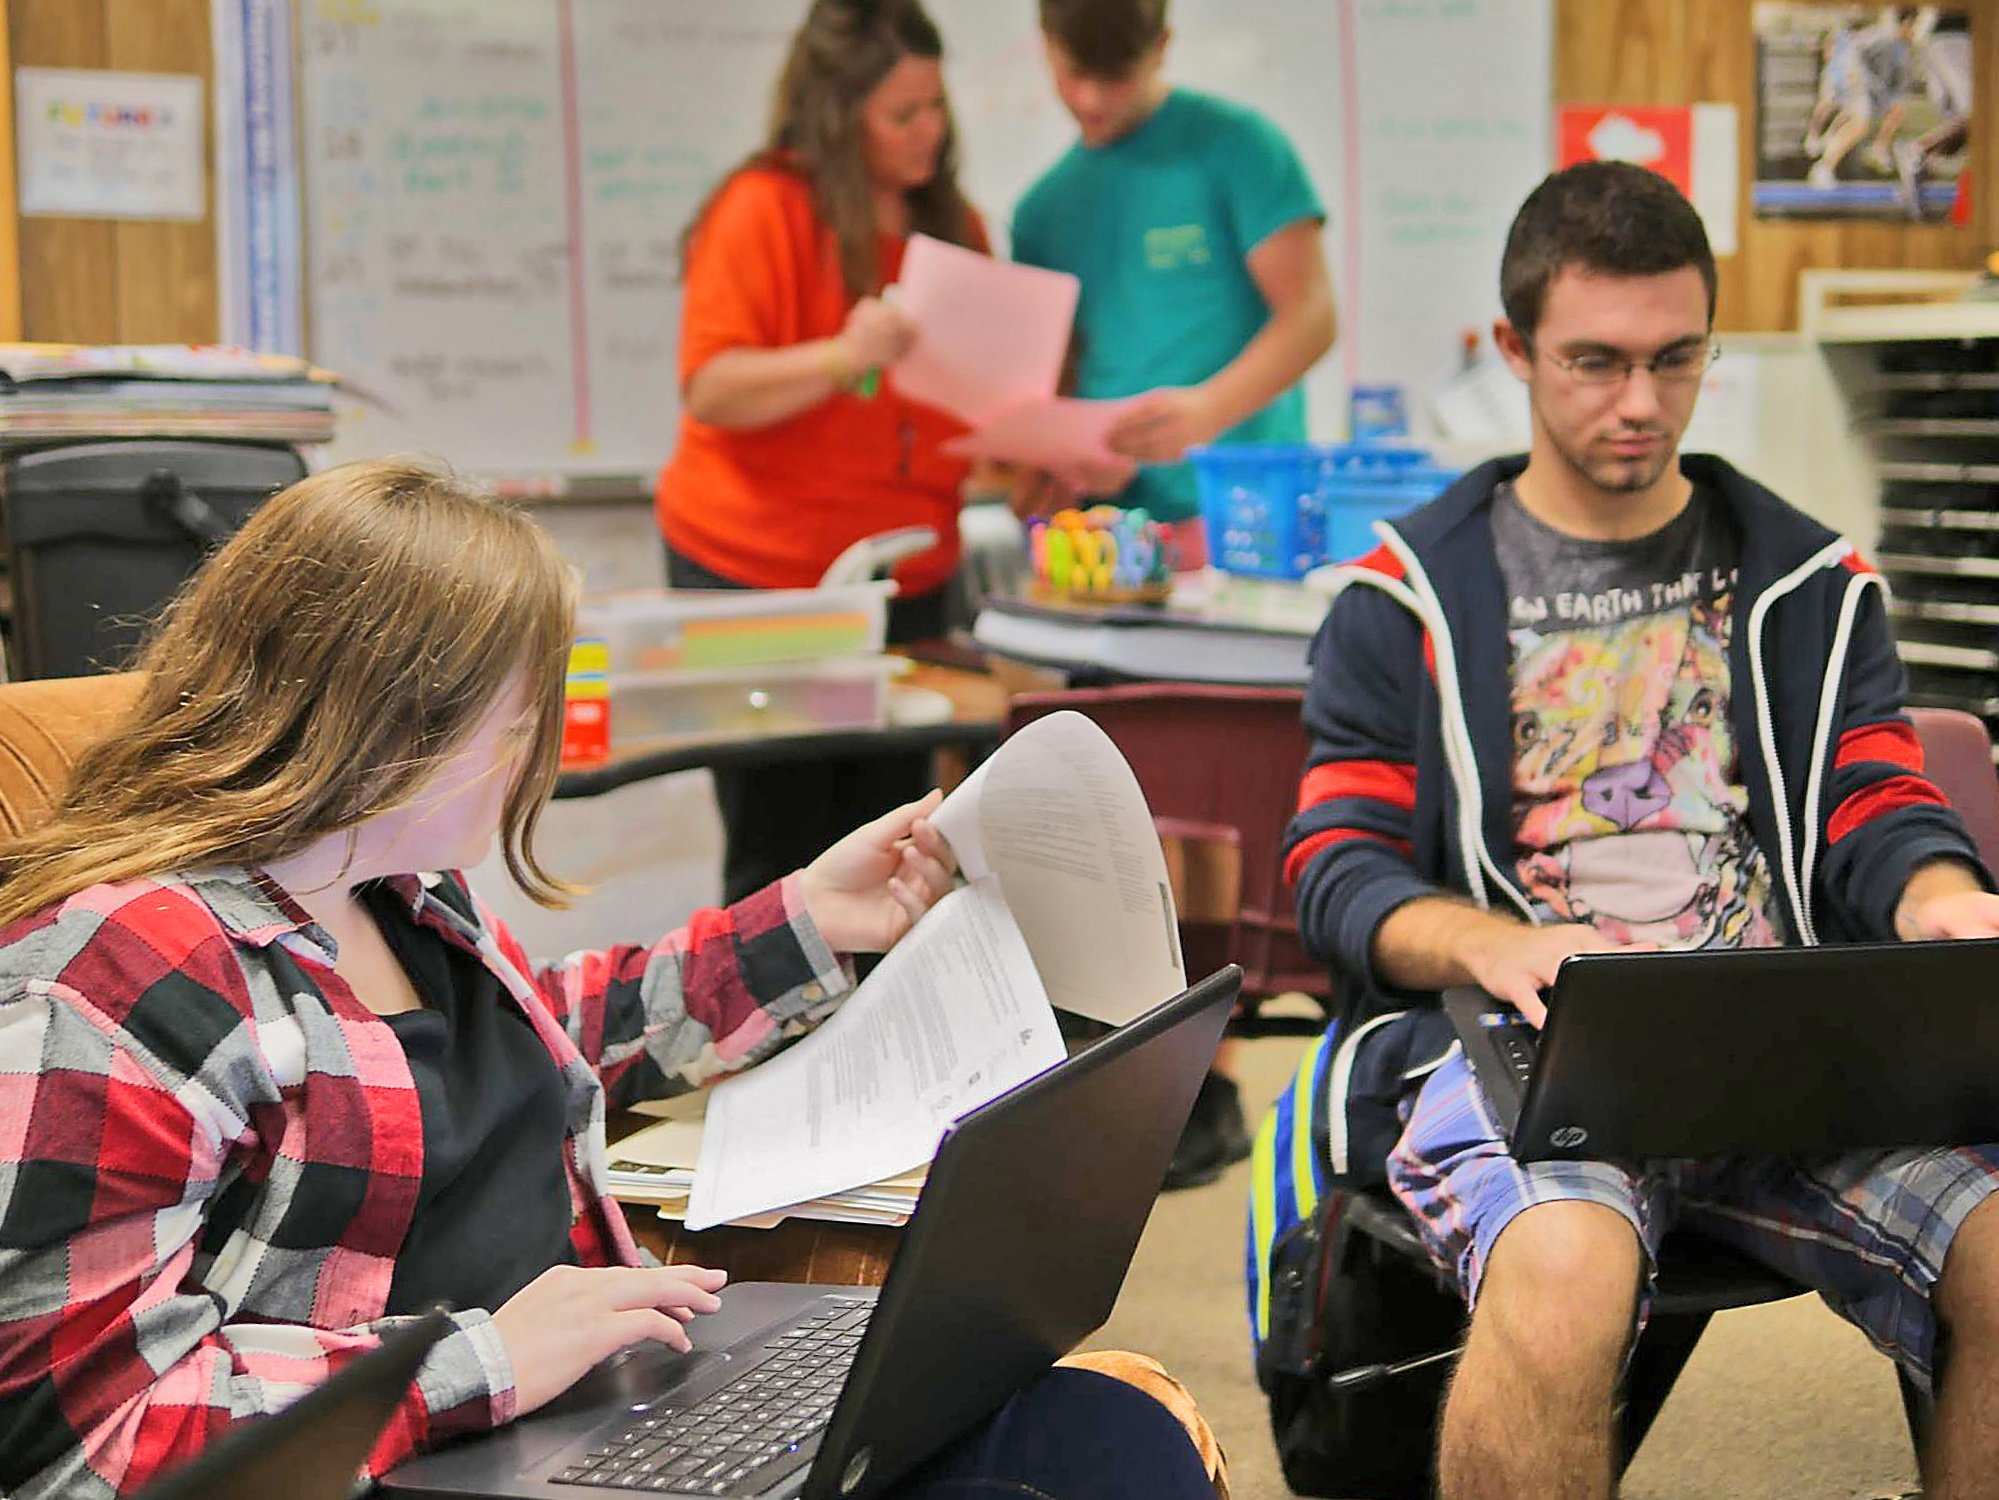 Students in Siler's Marketing class work on group-based semester projects focused around topics such as hospitality, sports management, and entrepreneurship.